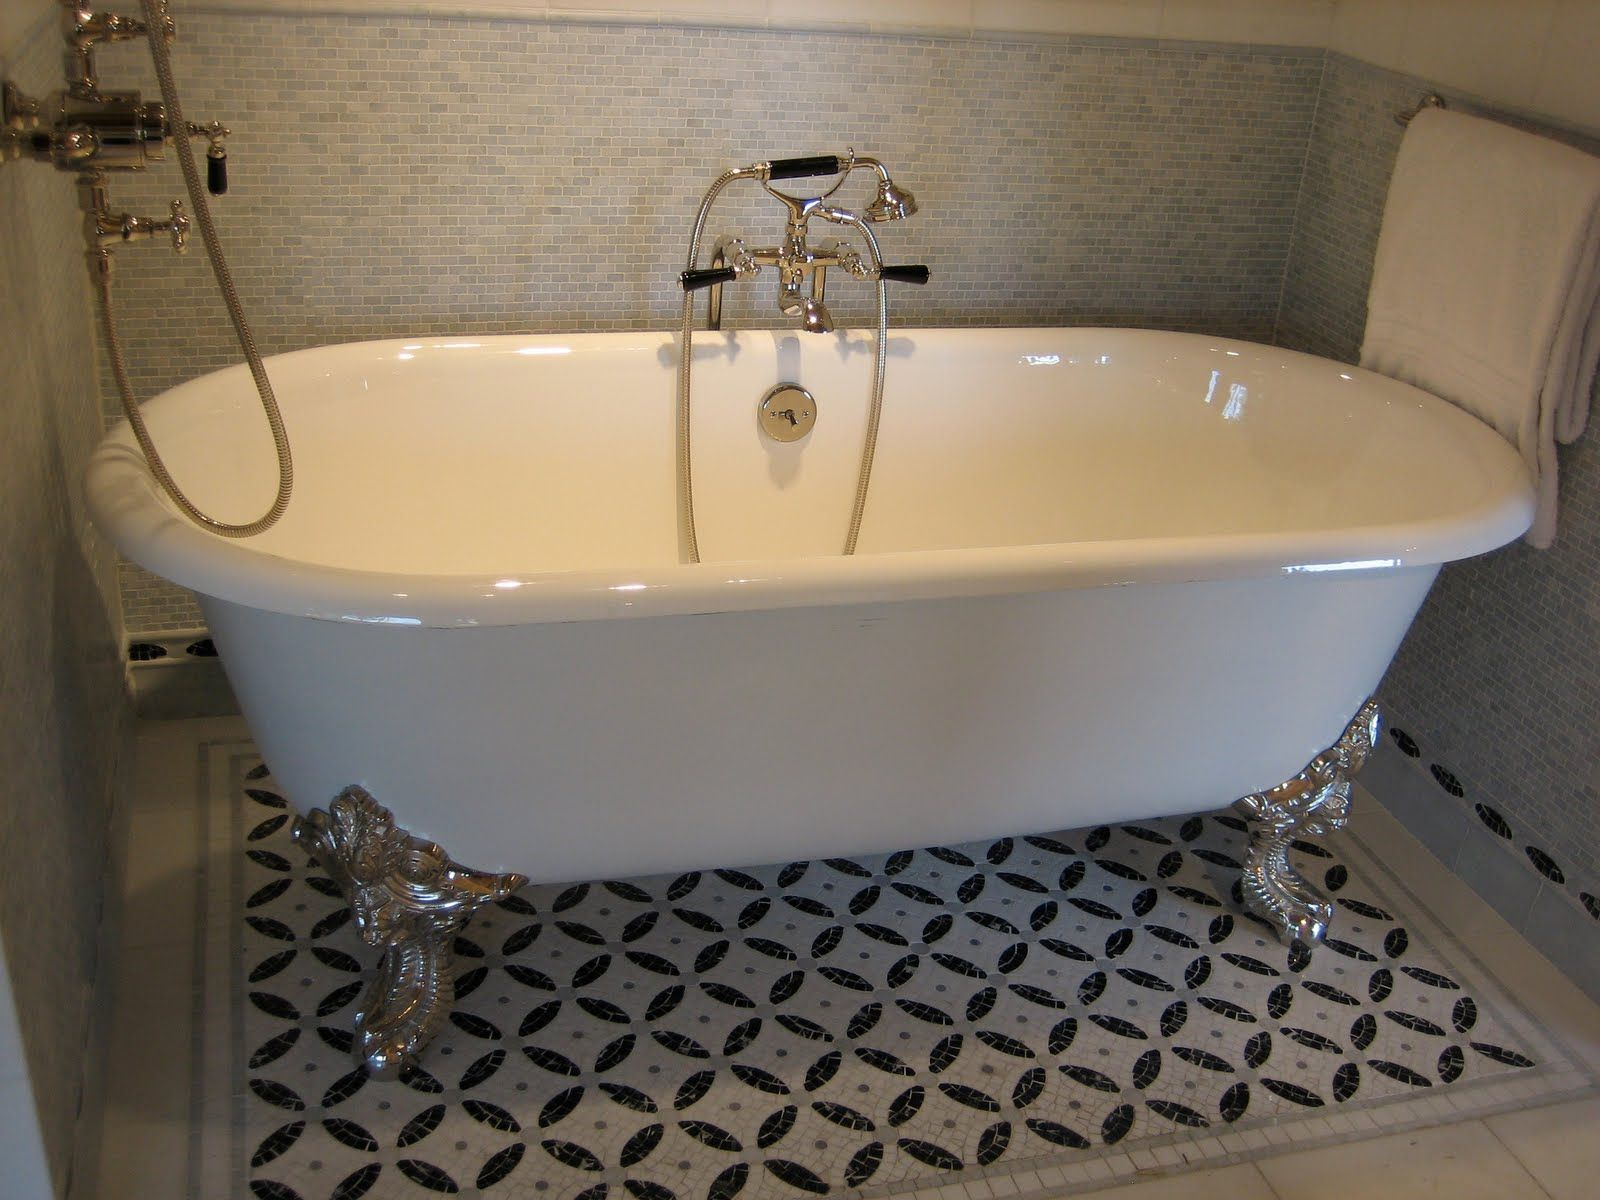 Bathroom ceramic tile flooring design ideas combine with for Pictures of bathrooms with clawfoot tubs